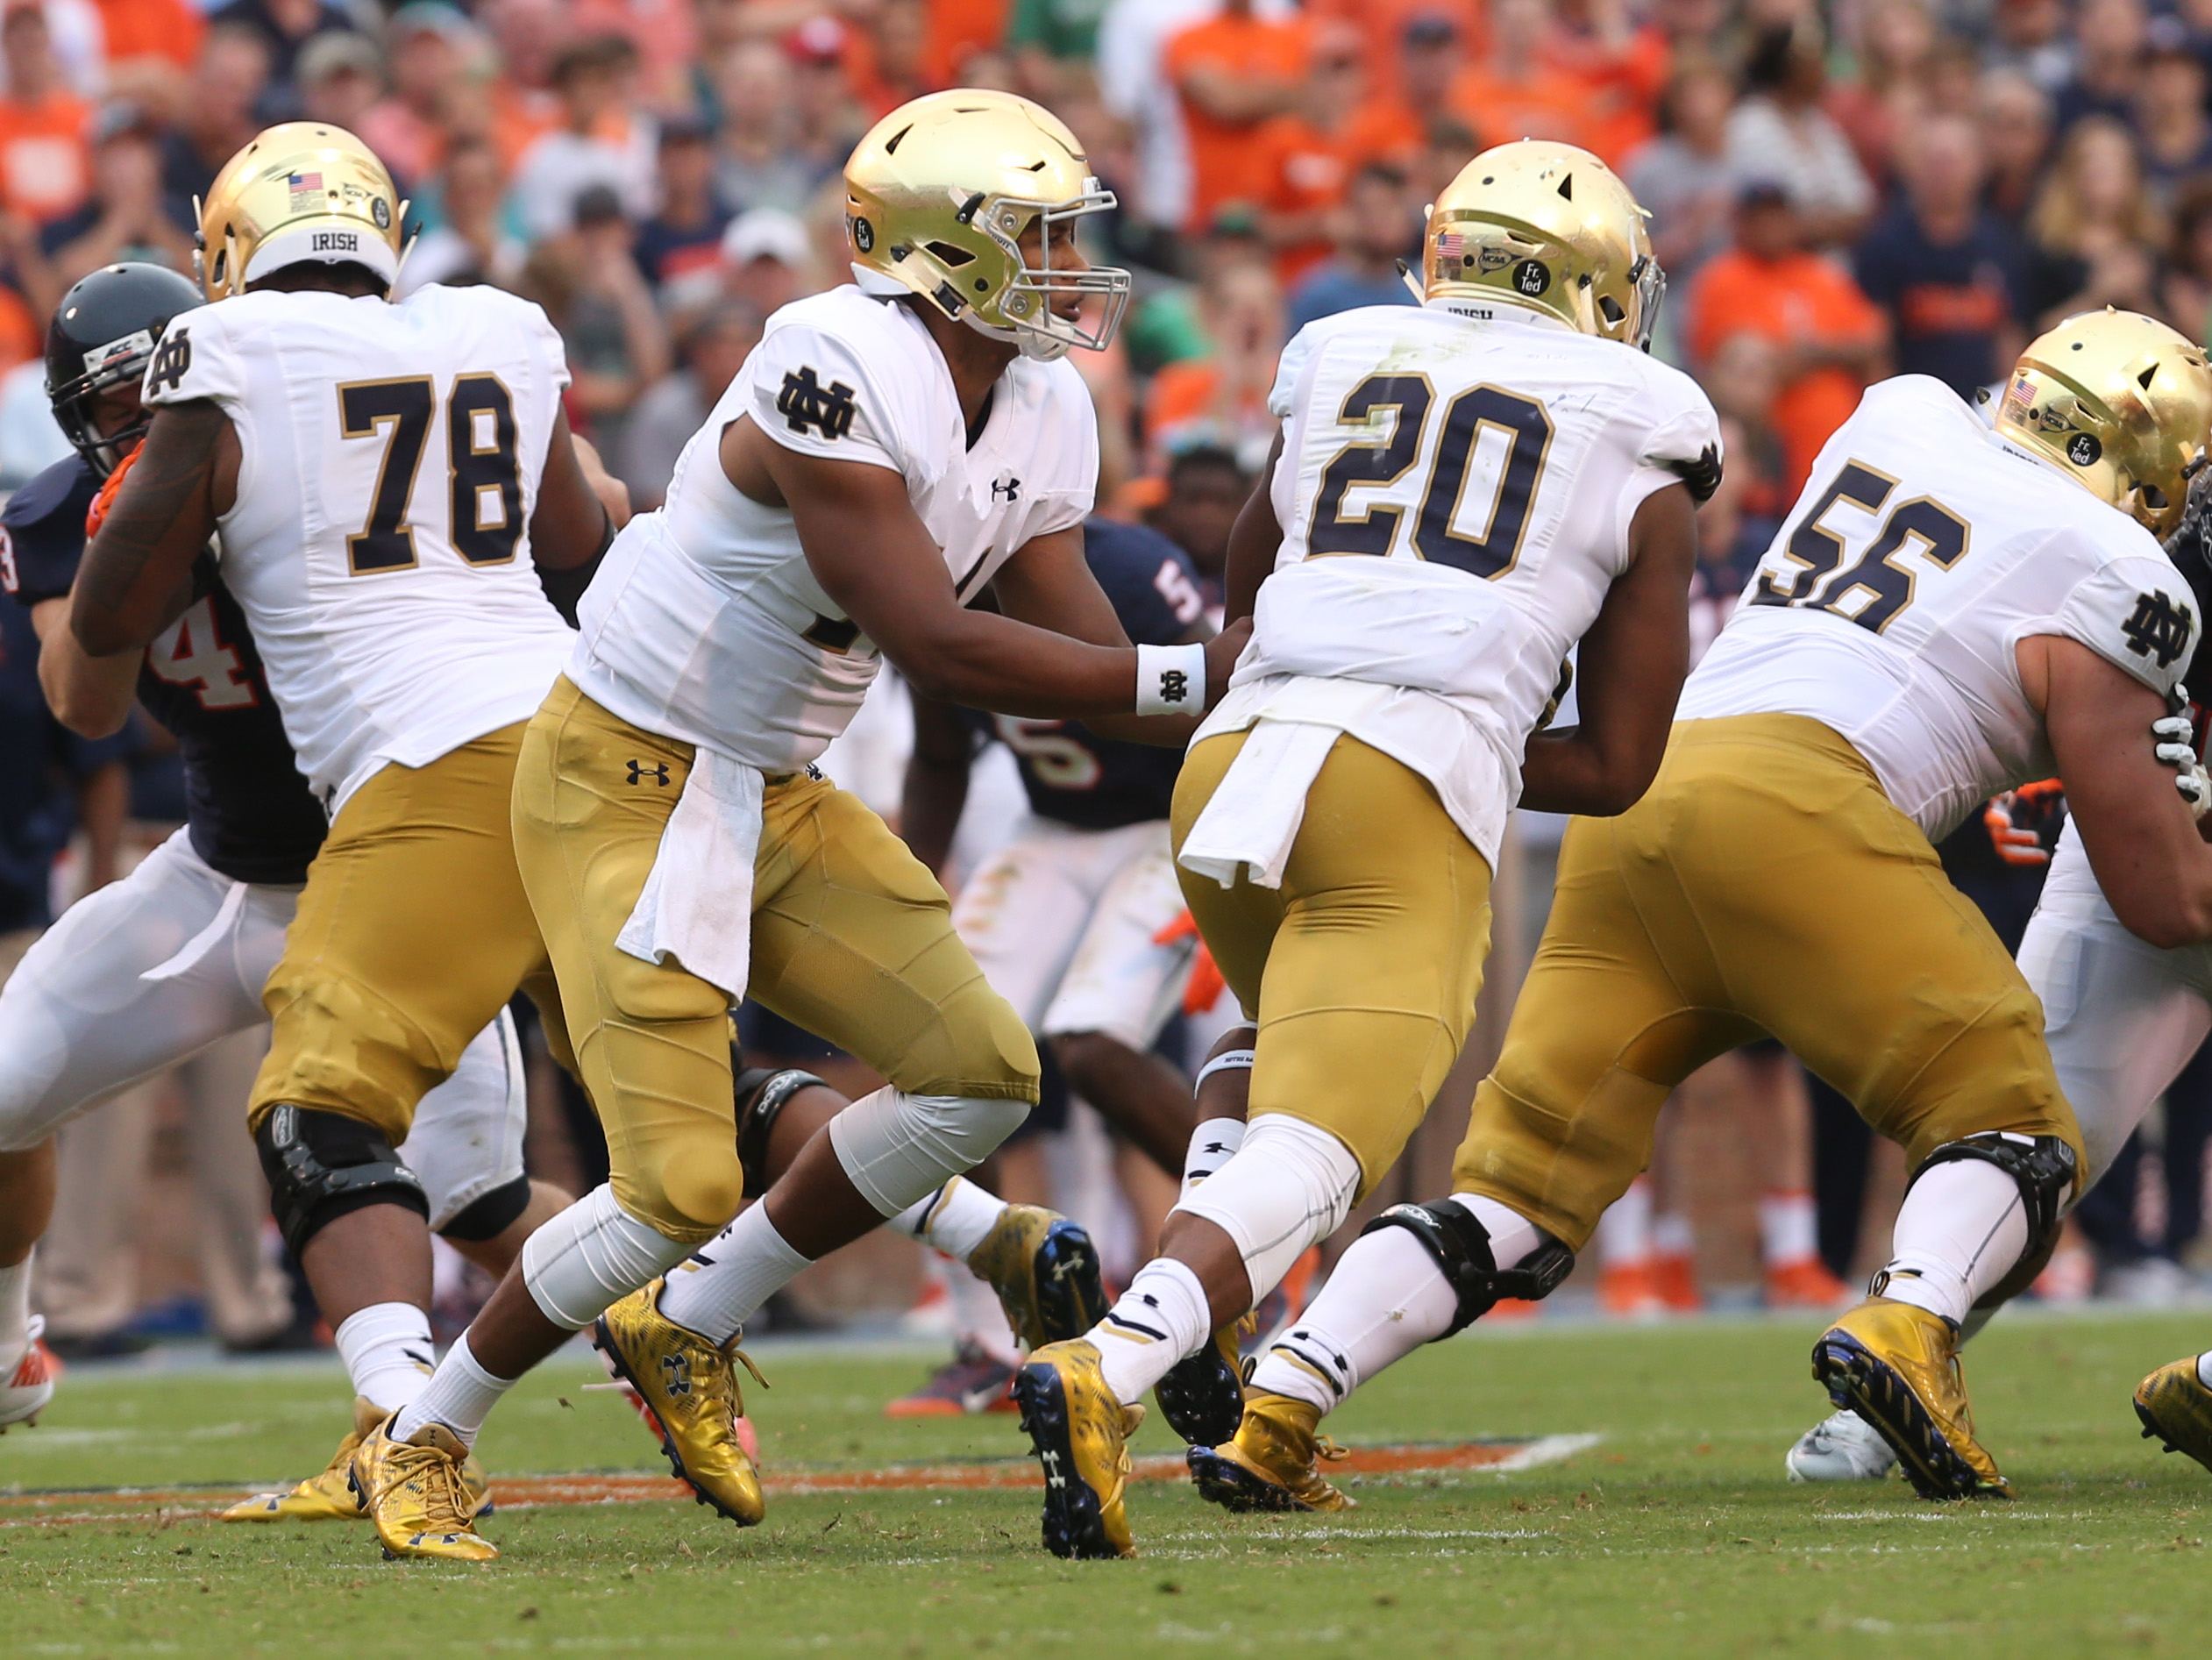 In this photo taken Saturday, Sept. 12, 2015, Notre Dame quarterback DeShone Kizer (14) hands off the ball to running back C.J. Prosise (20) during an NCAA football game against Virginia in Charlottesville, Va. Kizer didn't impress Notre Dame at first. Th